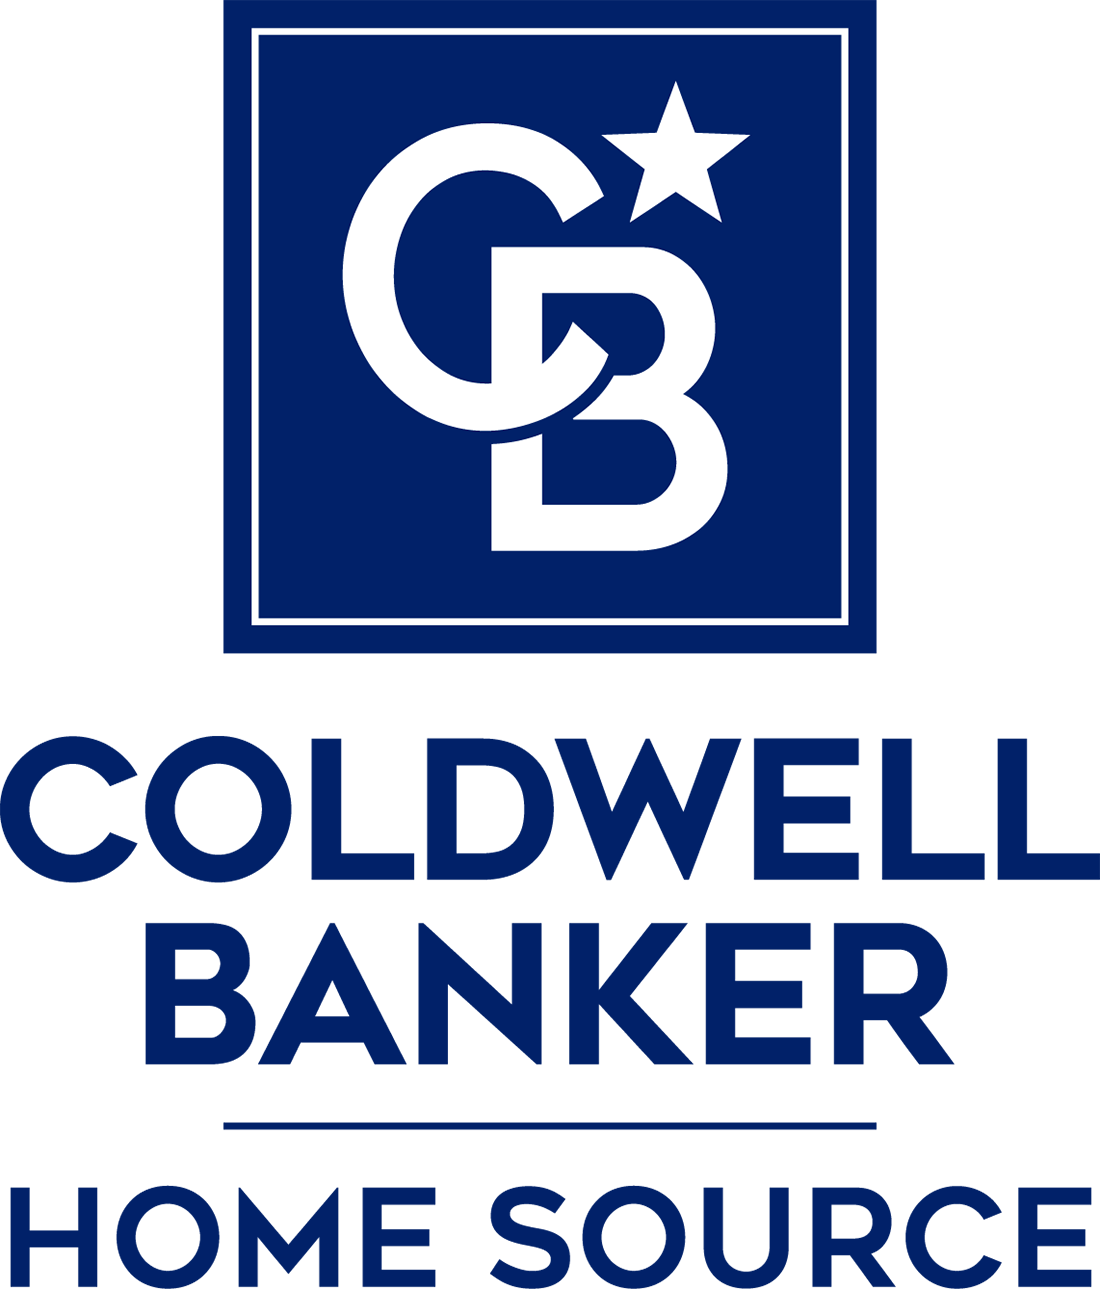 Jeff Longshore - Coldwell Banker Home Source Logo